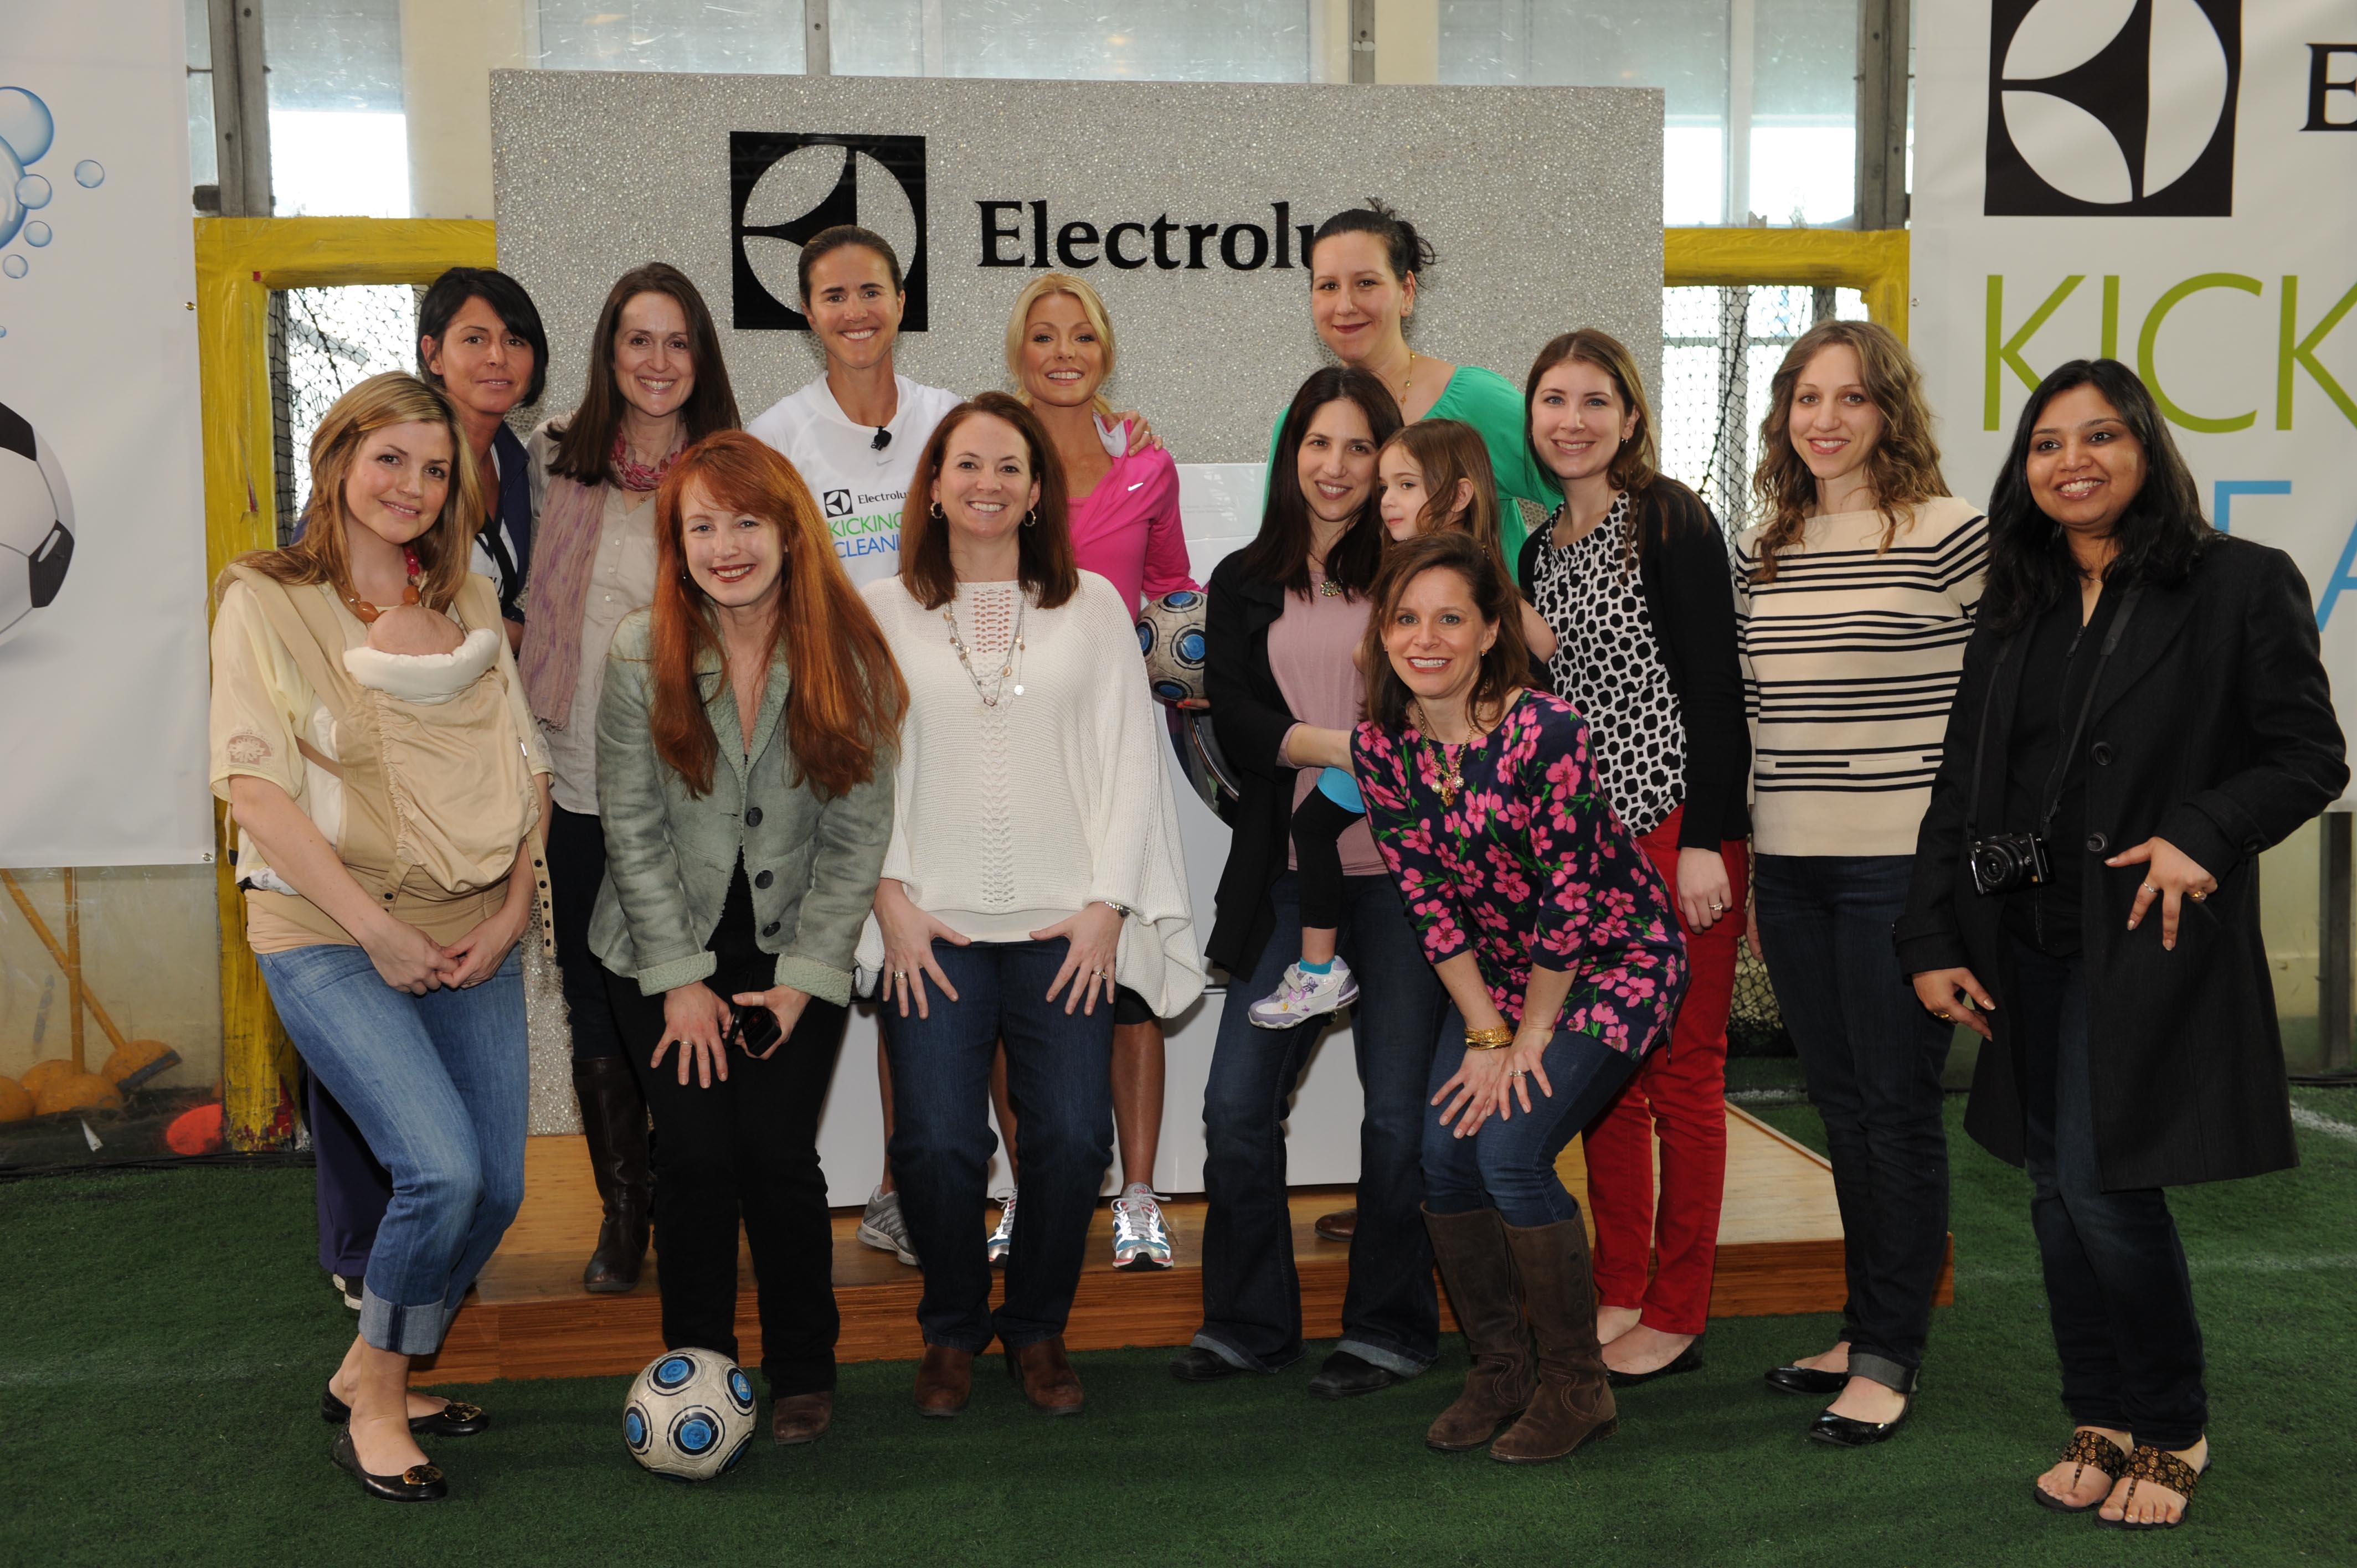 Kicking And Cleaning With Electrolux Rolemommy